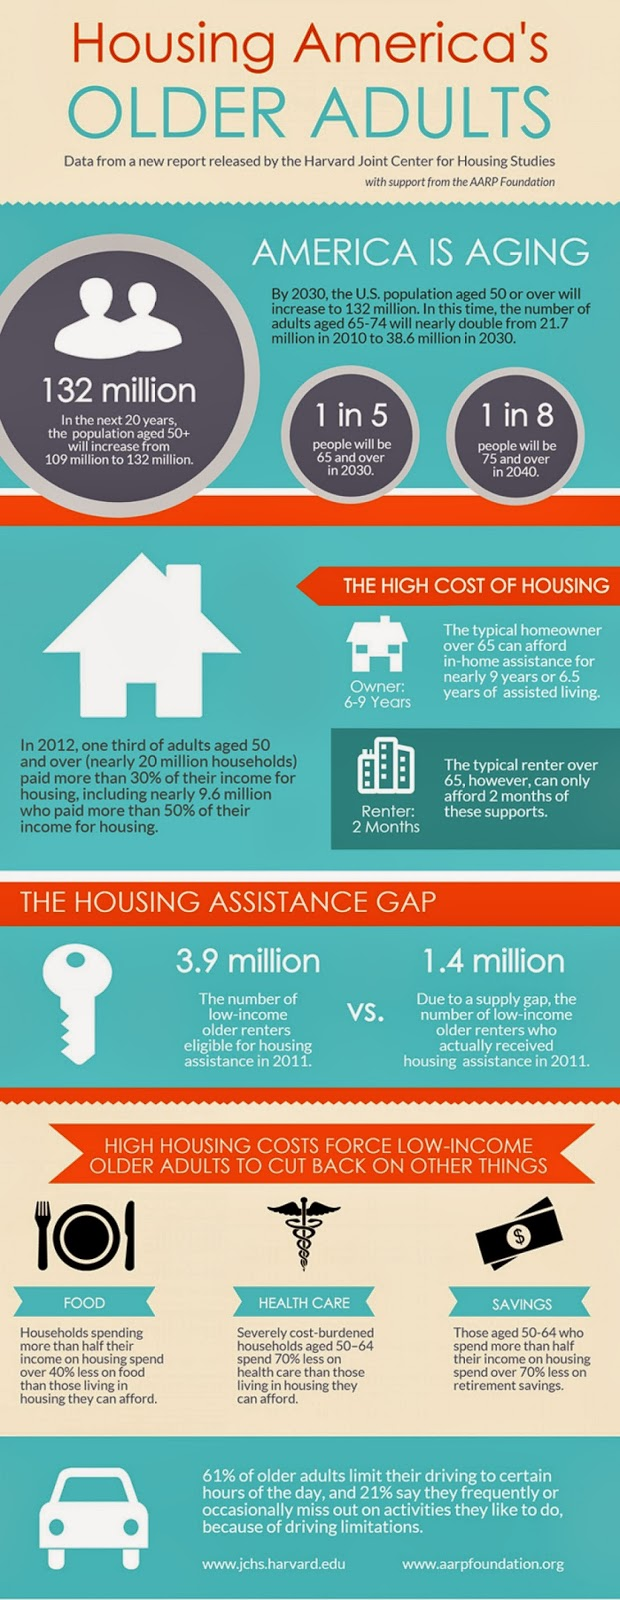 Housing America's Older Adults infographic includes report statistics